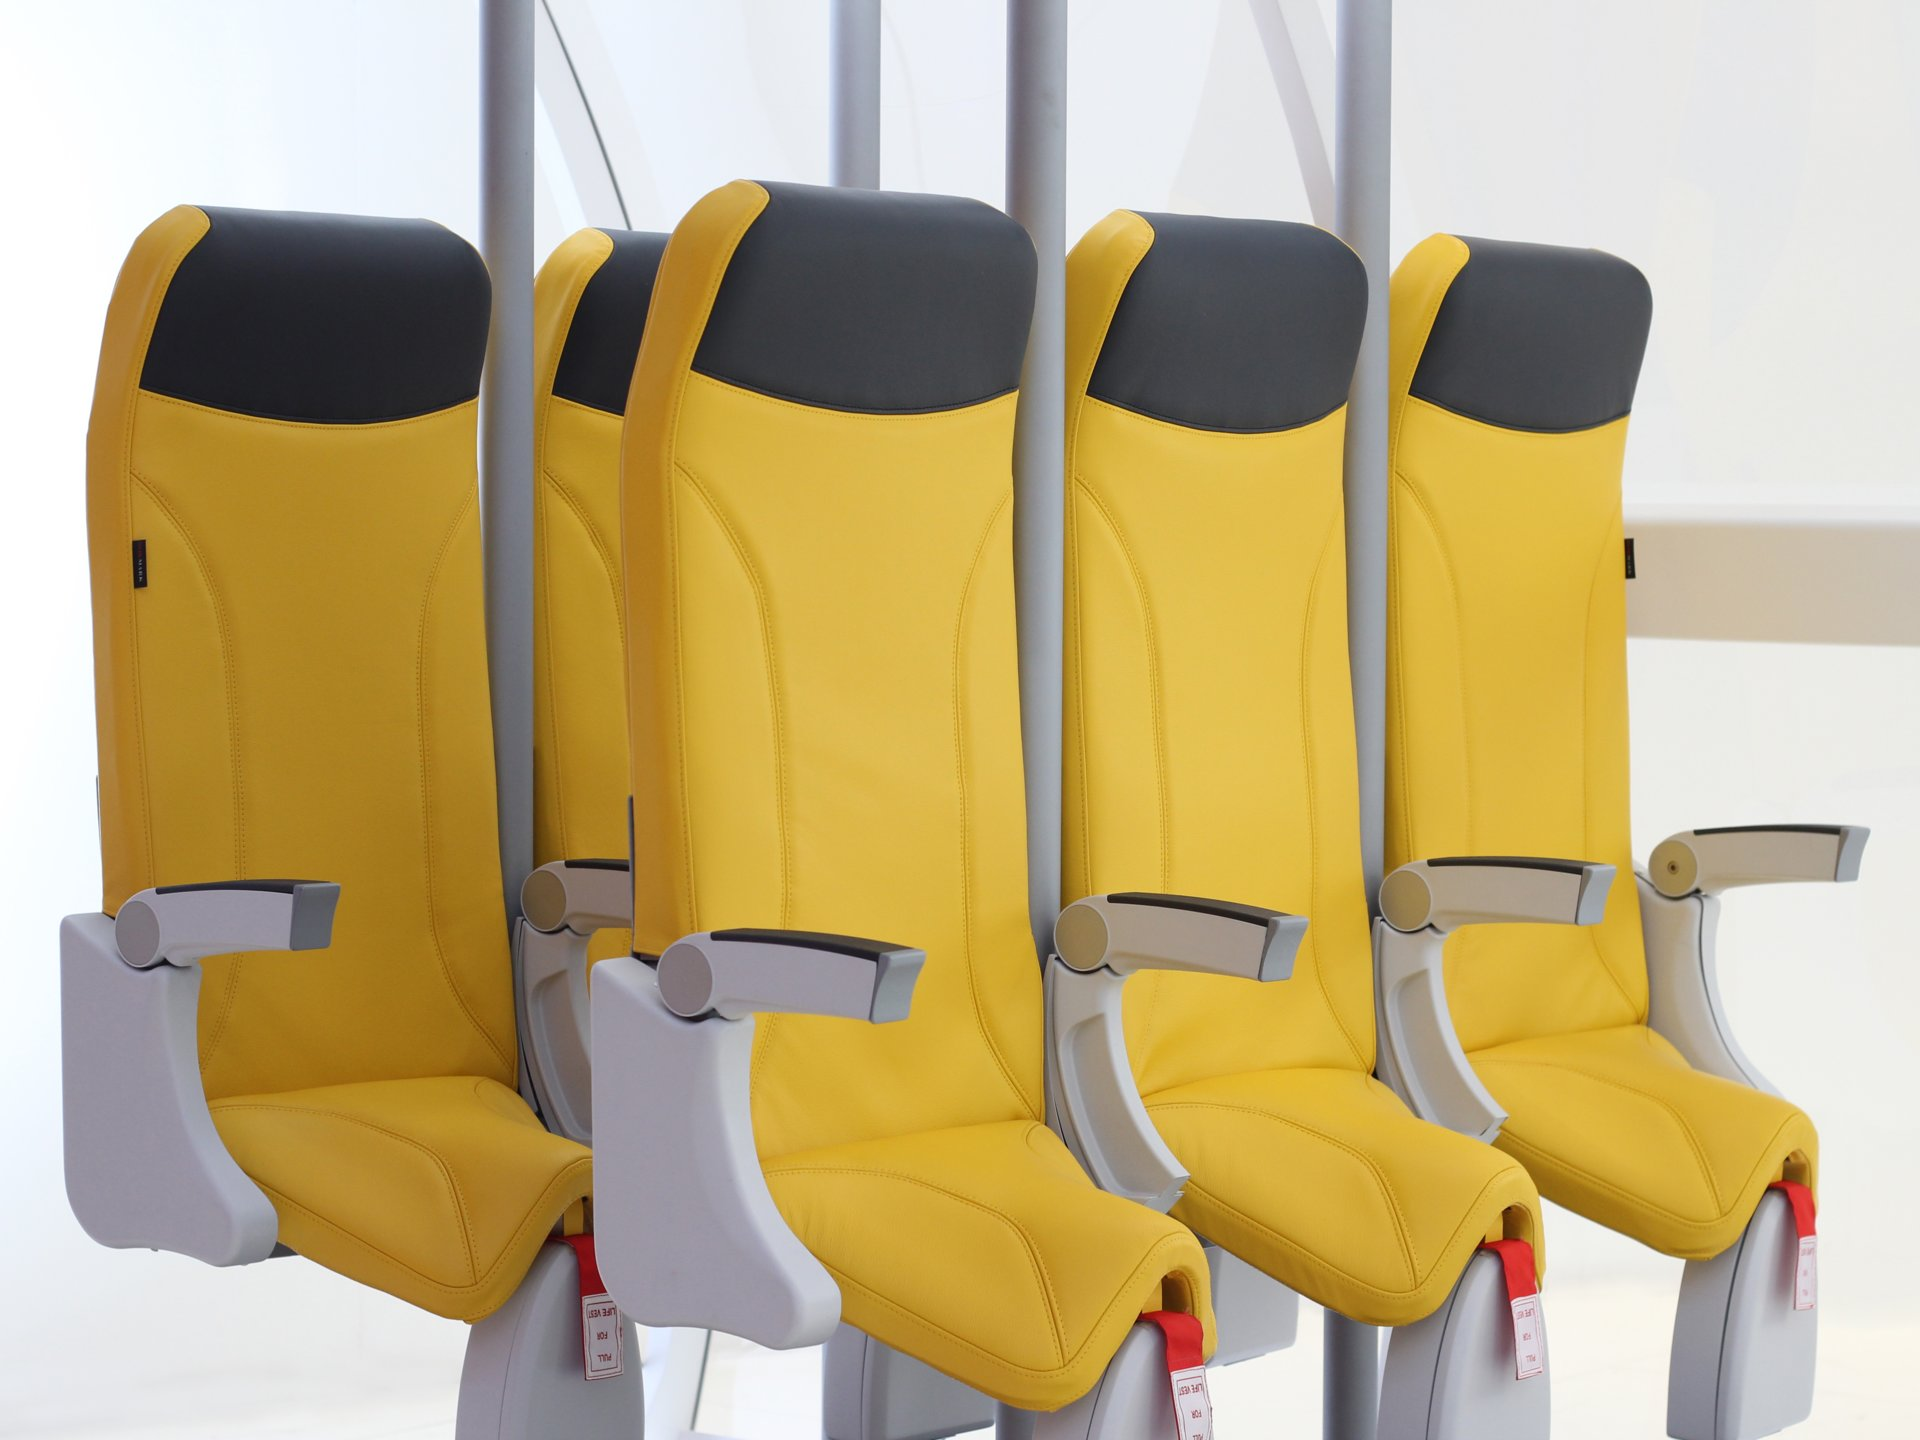 what's the secret of new parking seats in travel planes?